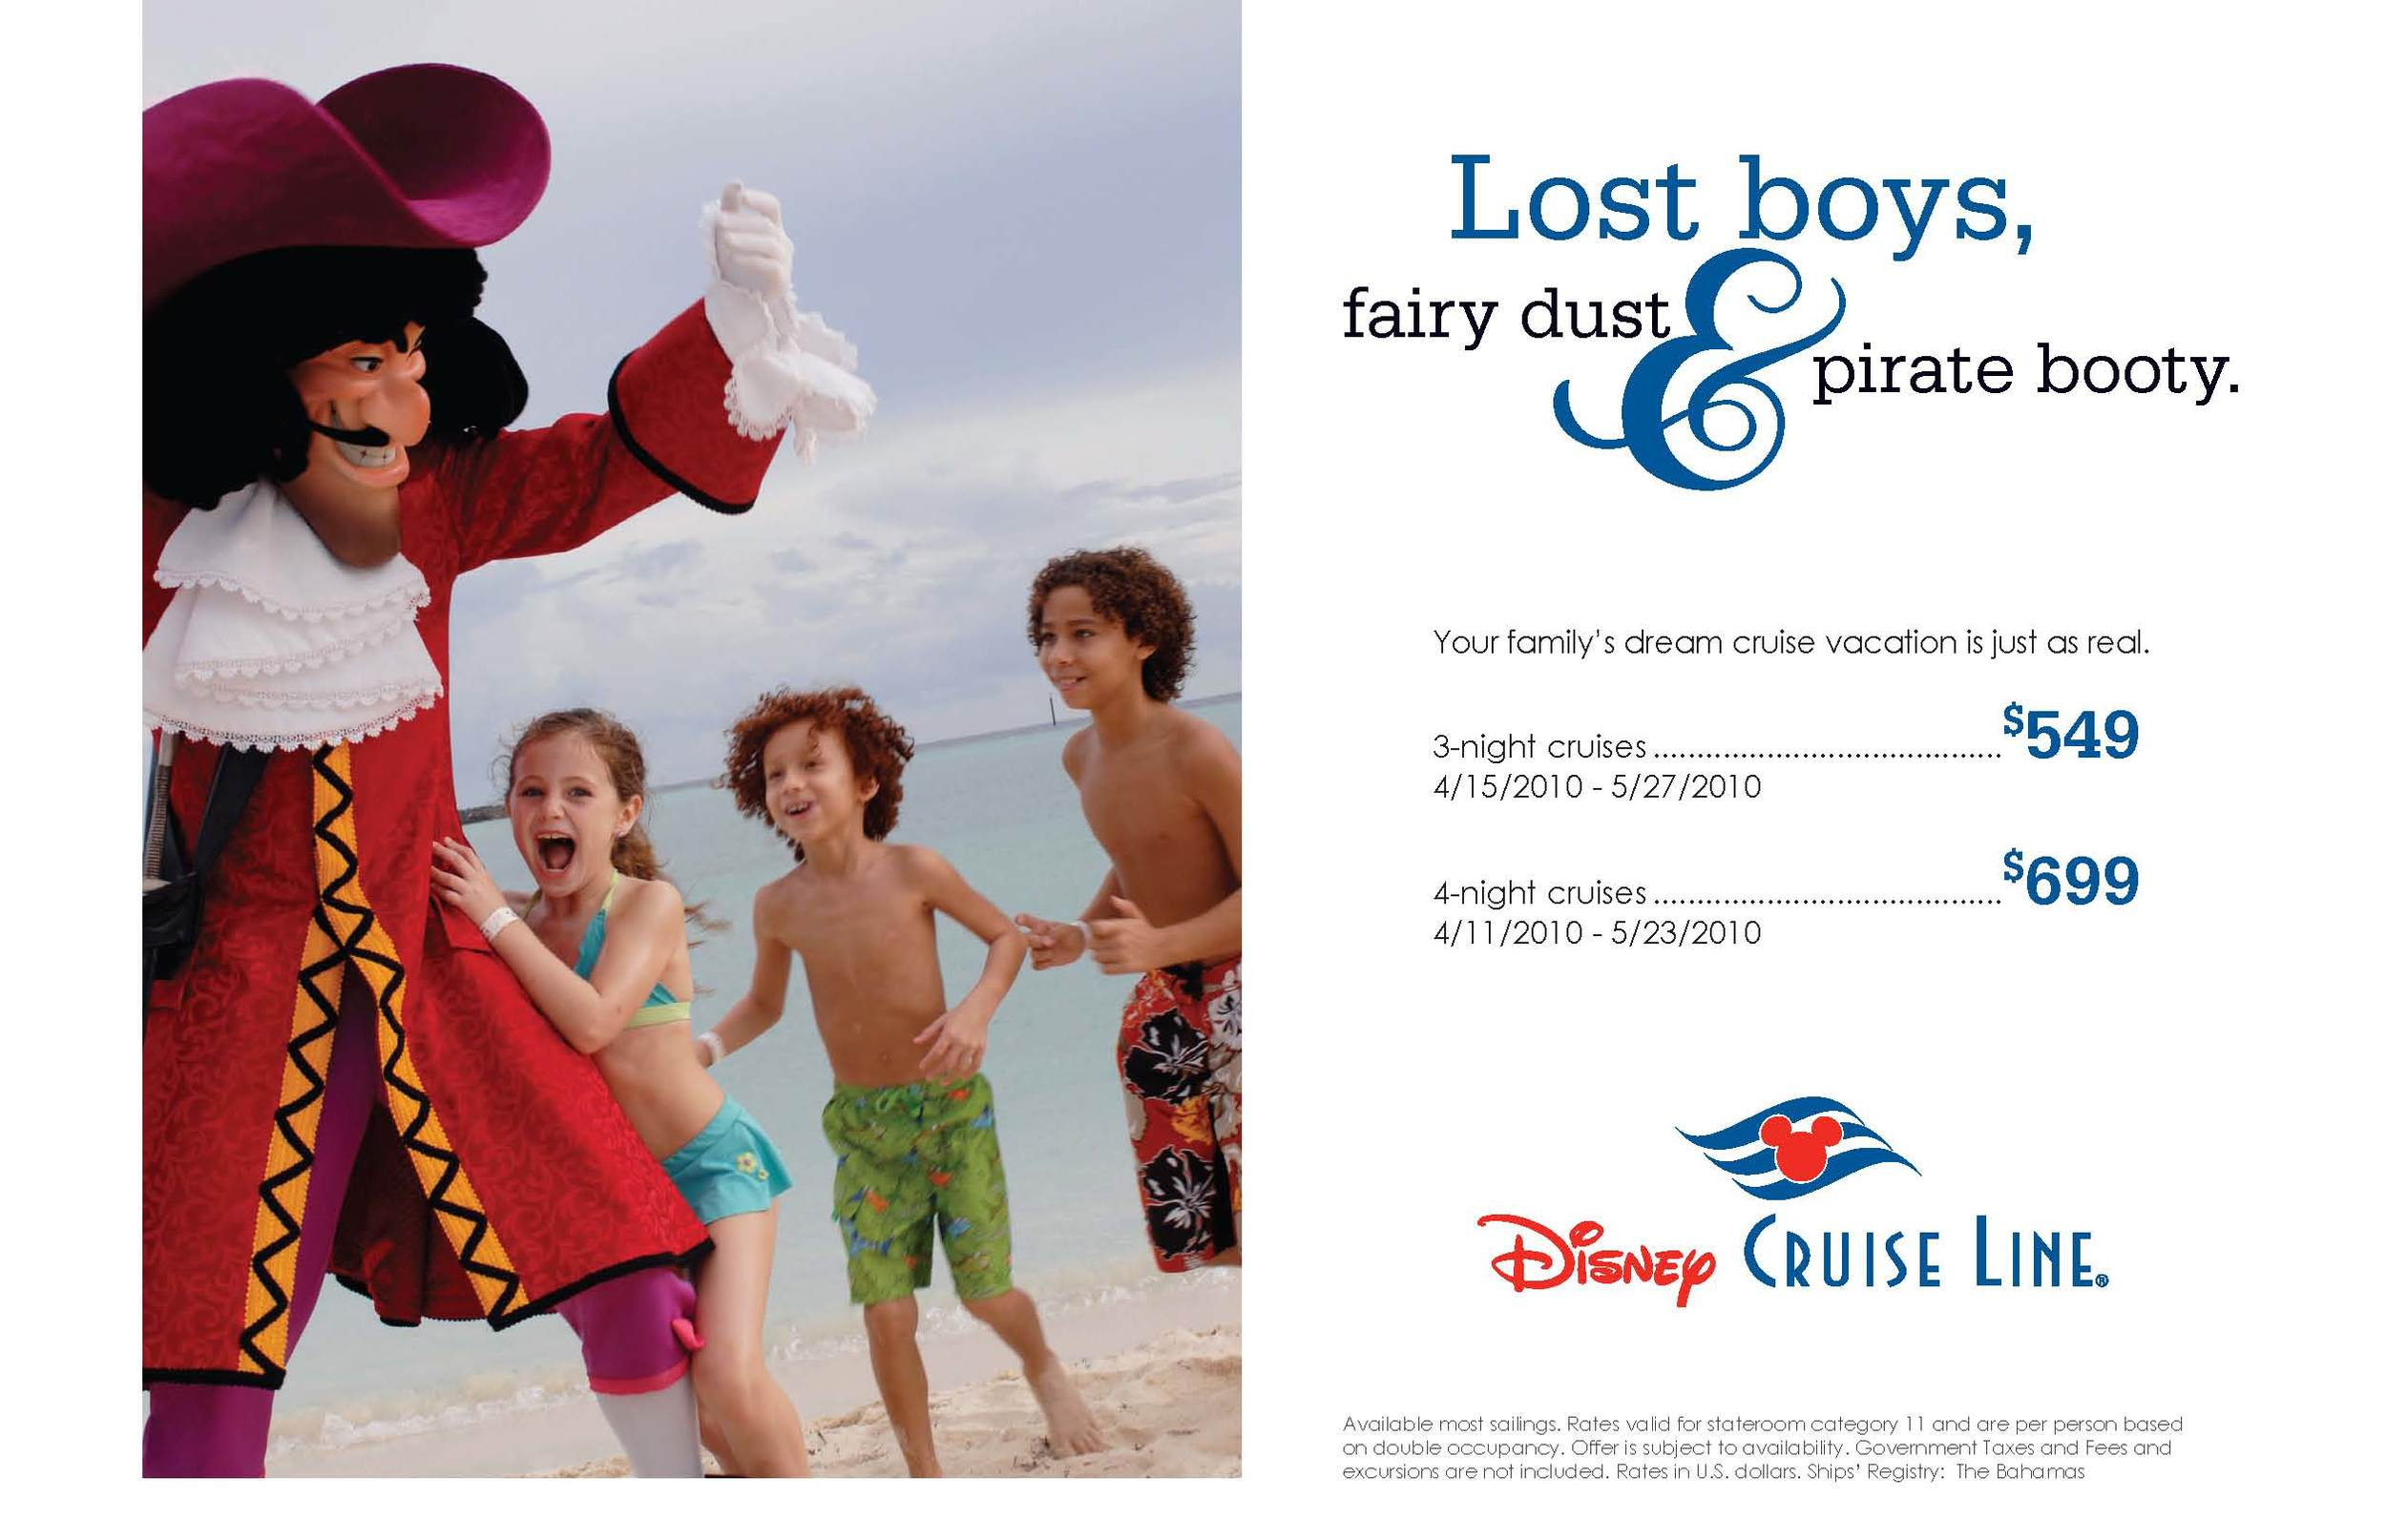 Disney_Jan10mag-CruiseLine.jpg